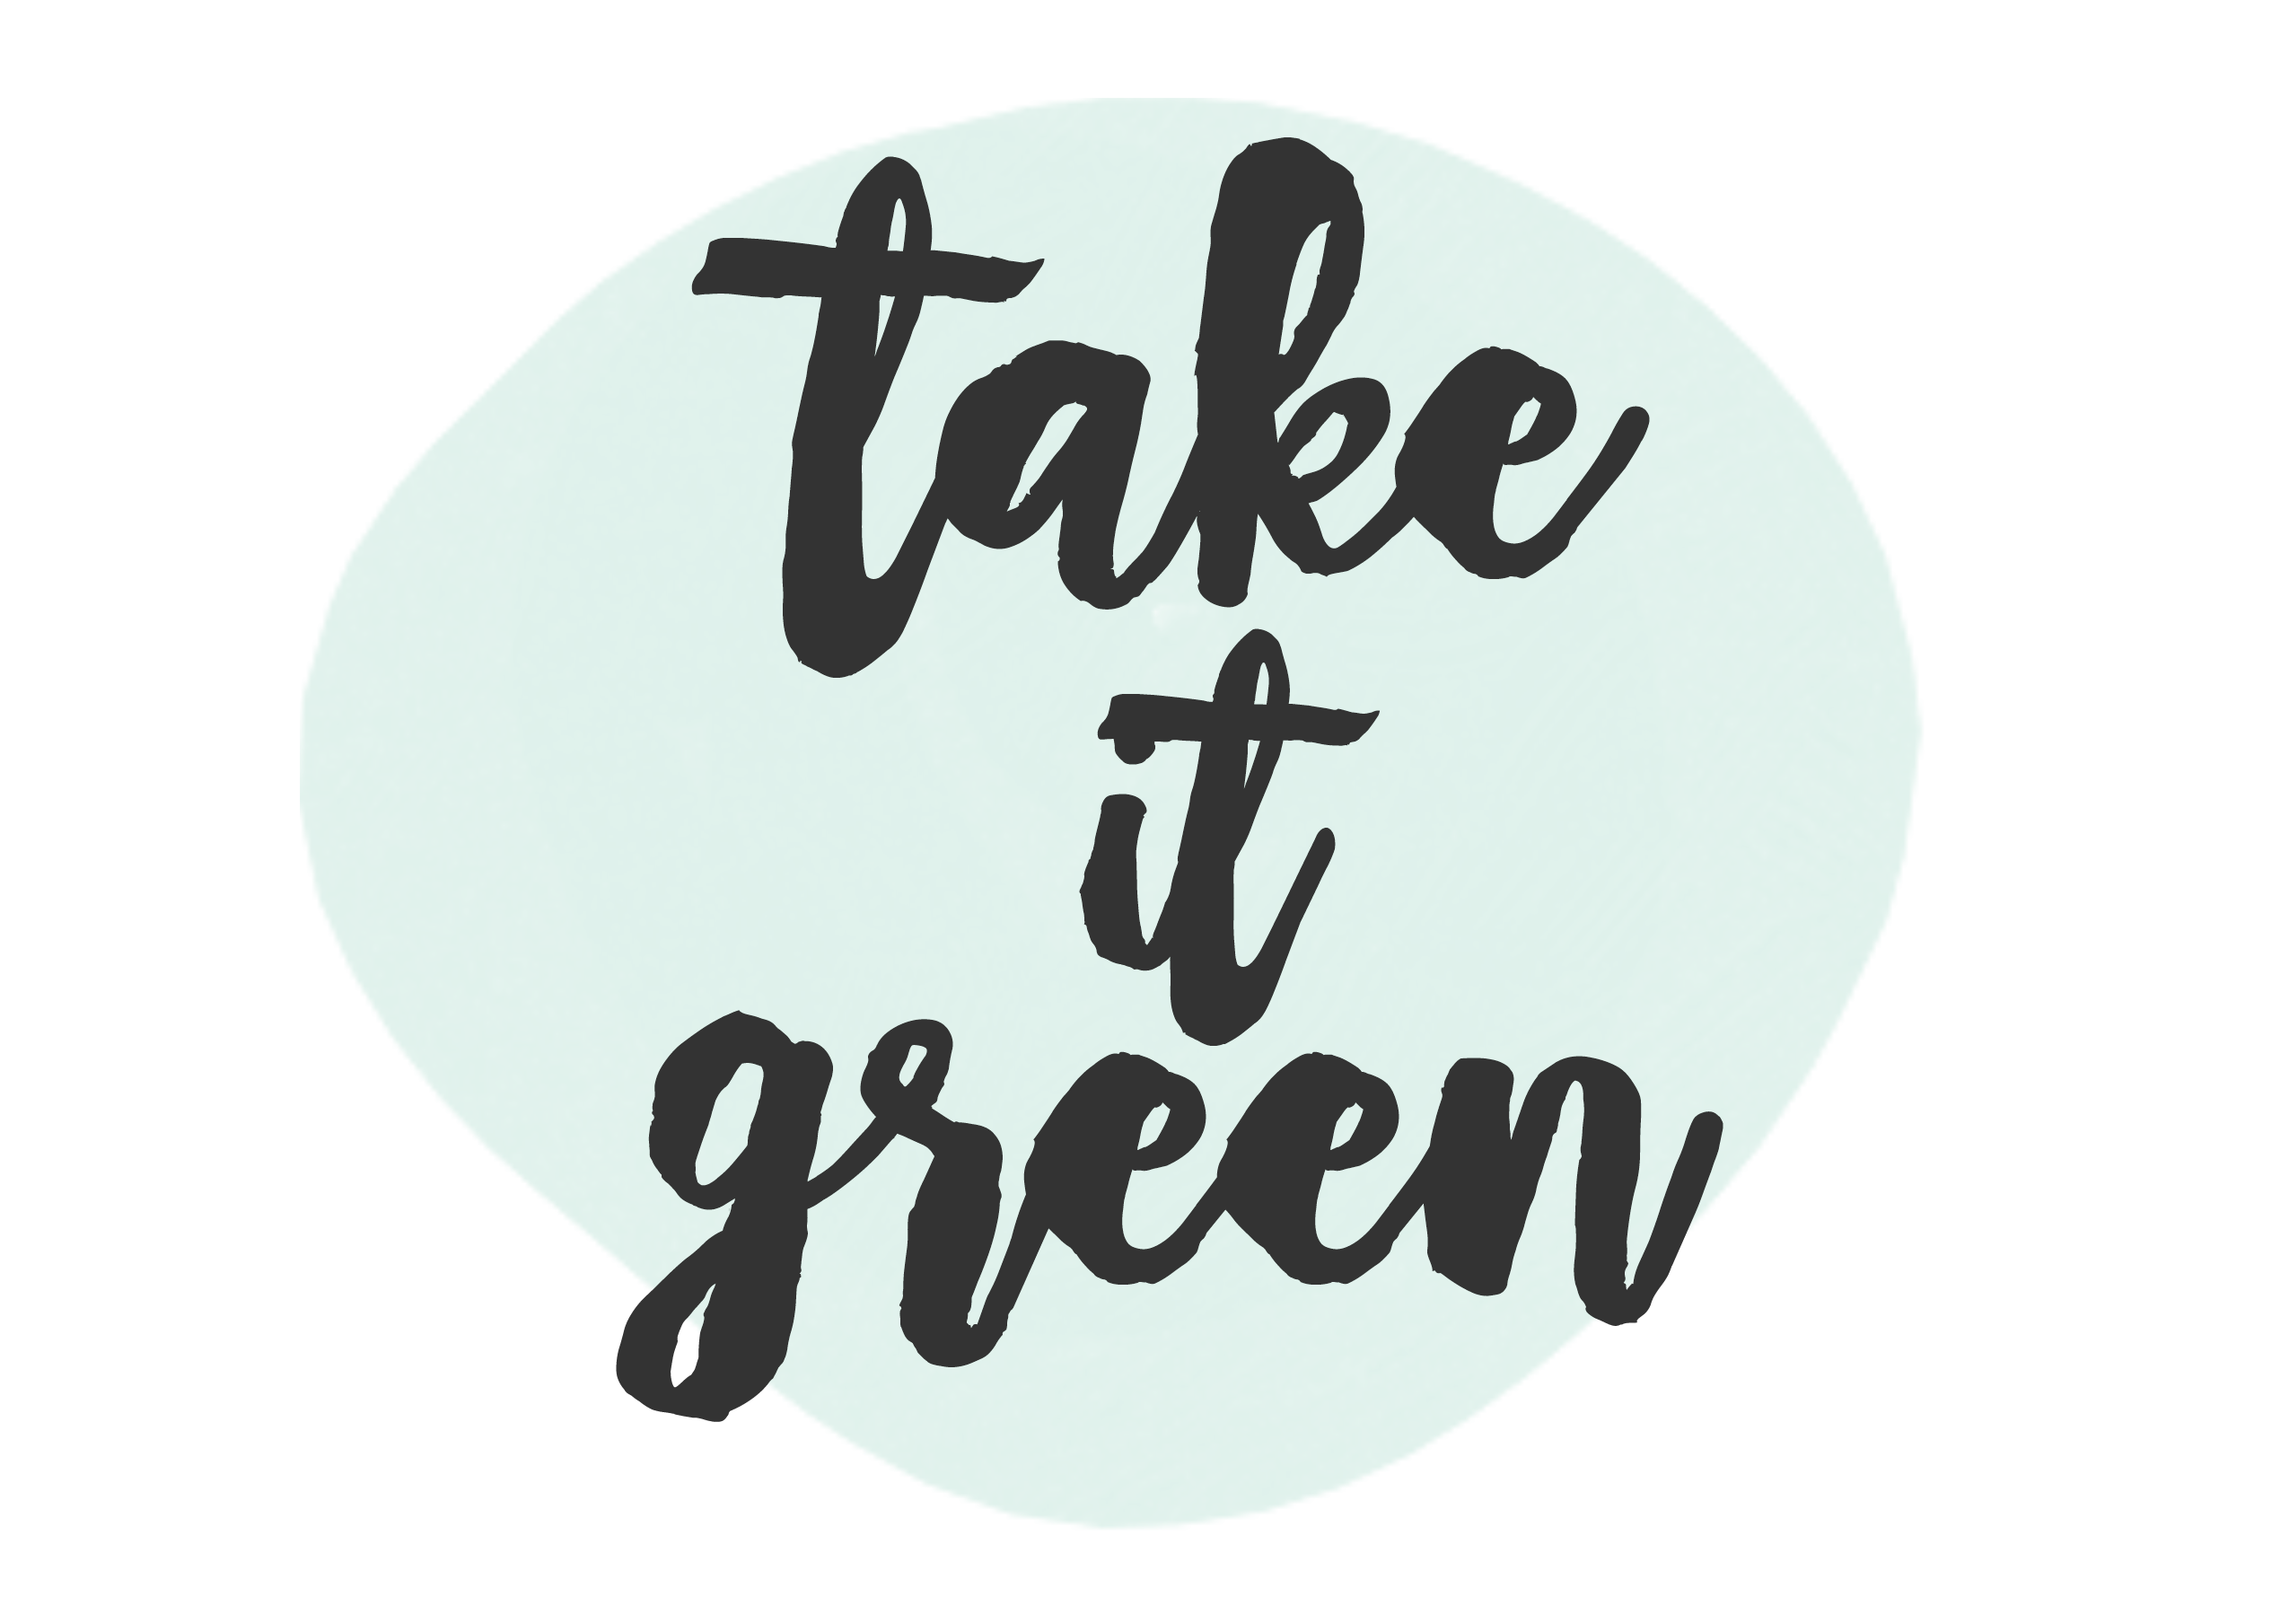 Take It Green